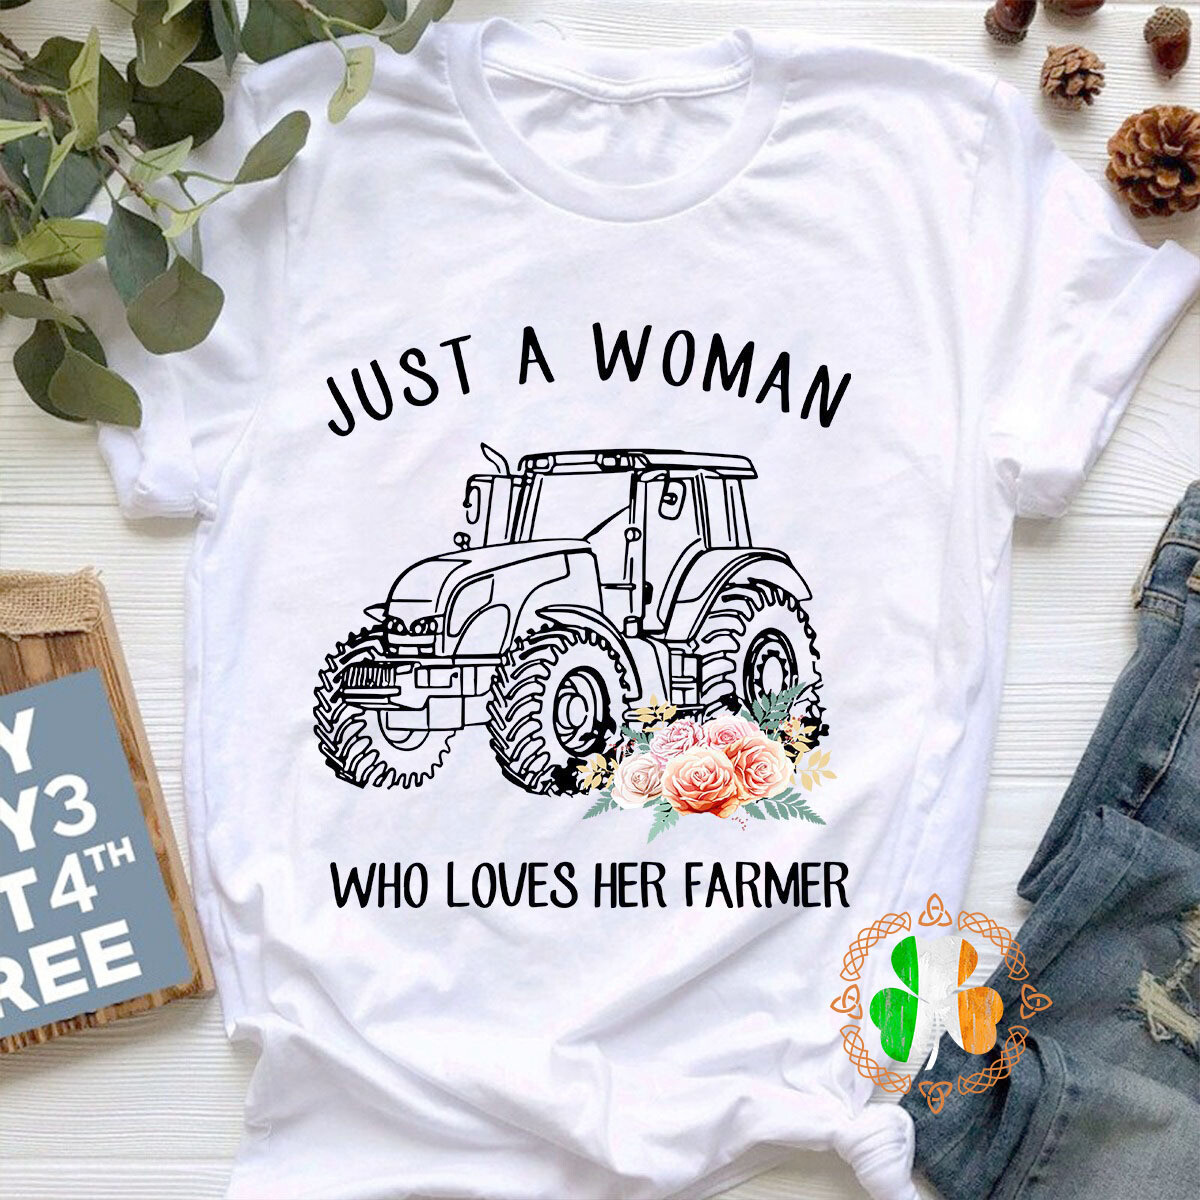 Just a woman who loves her farmer shirt